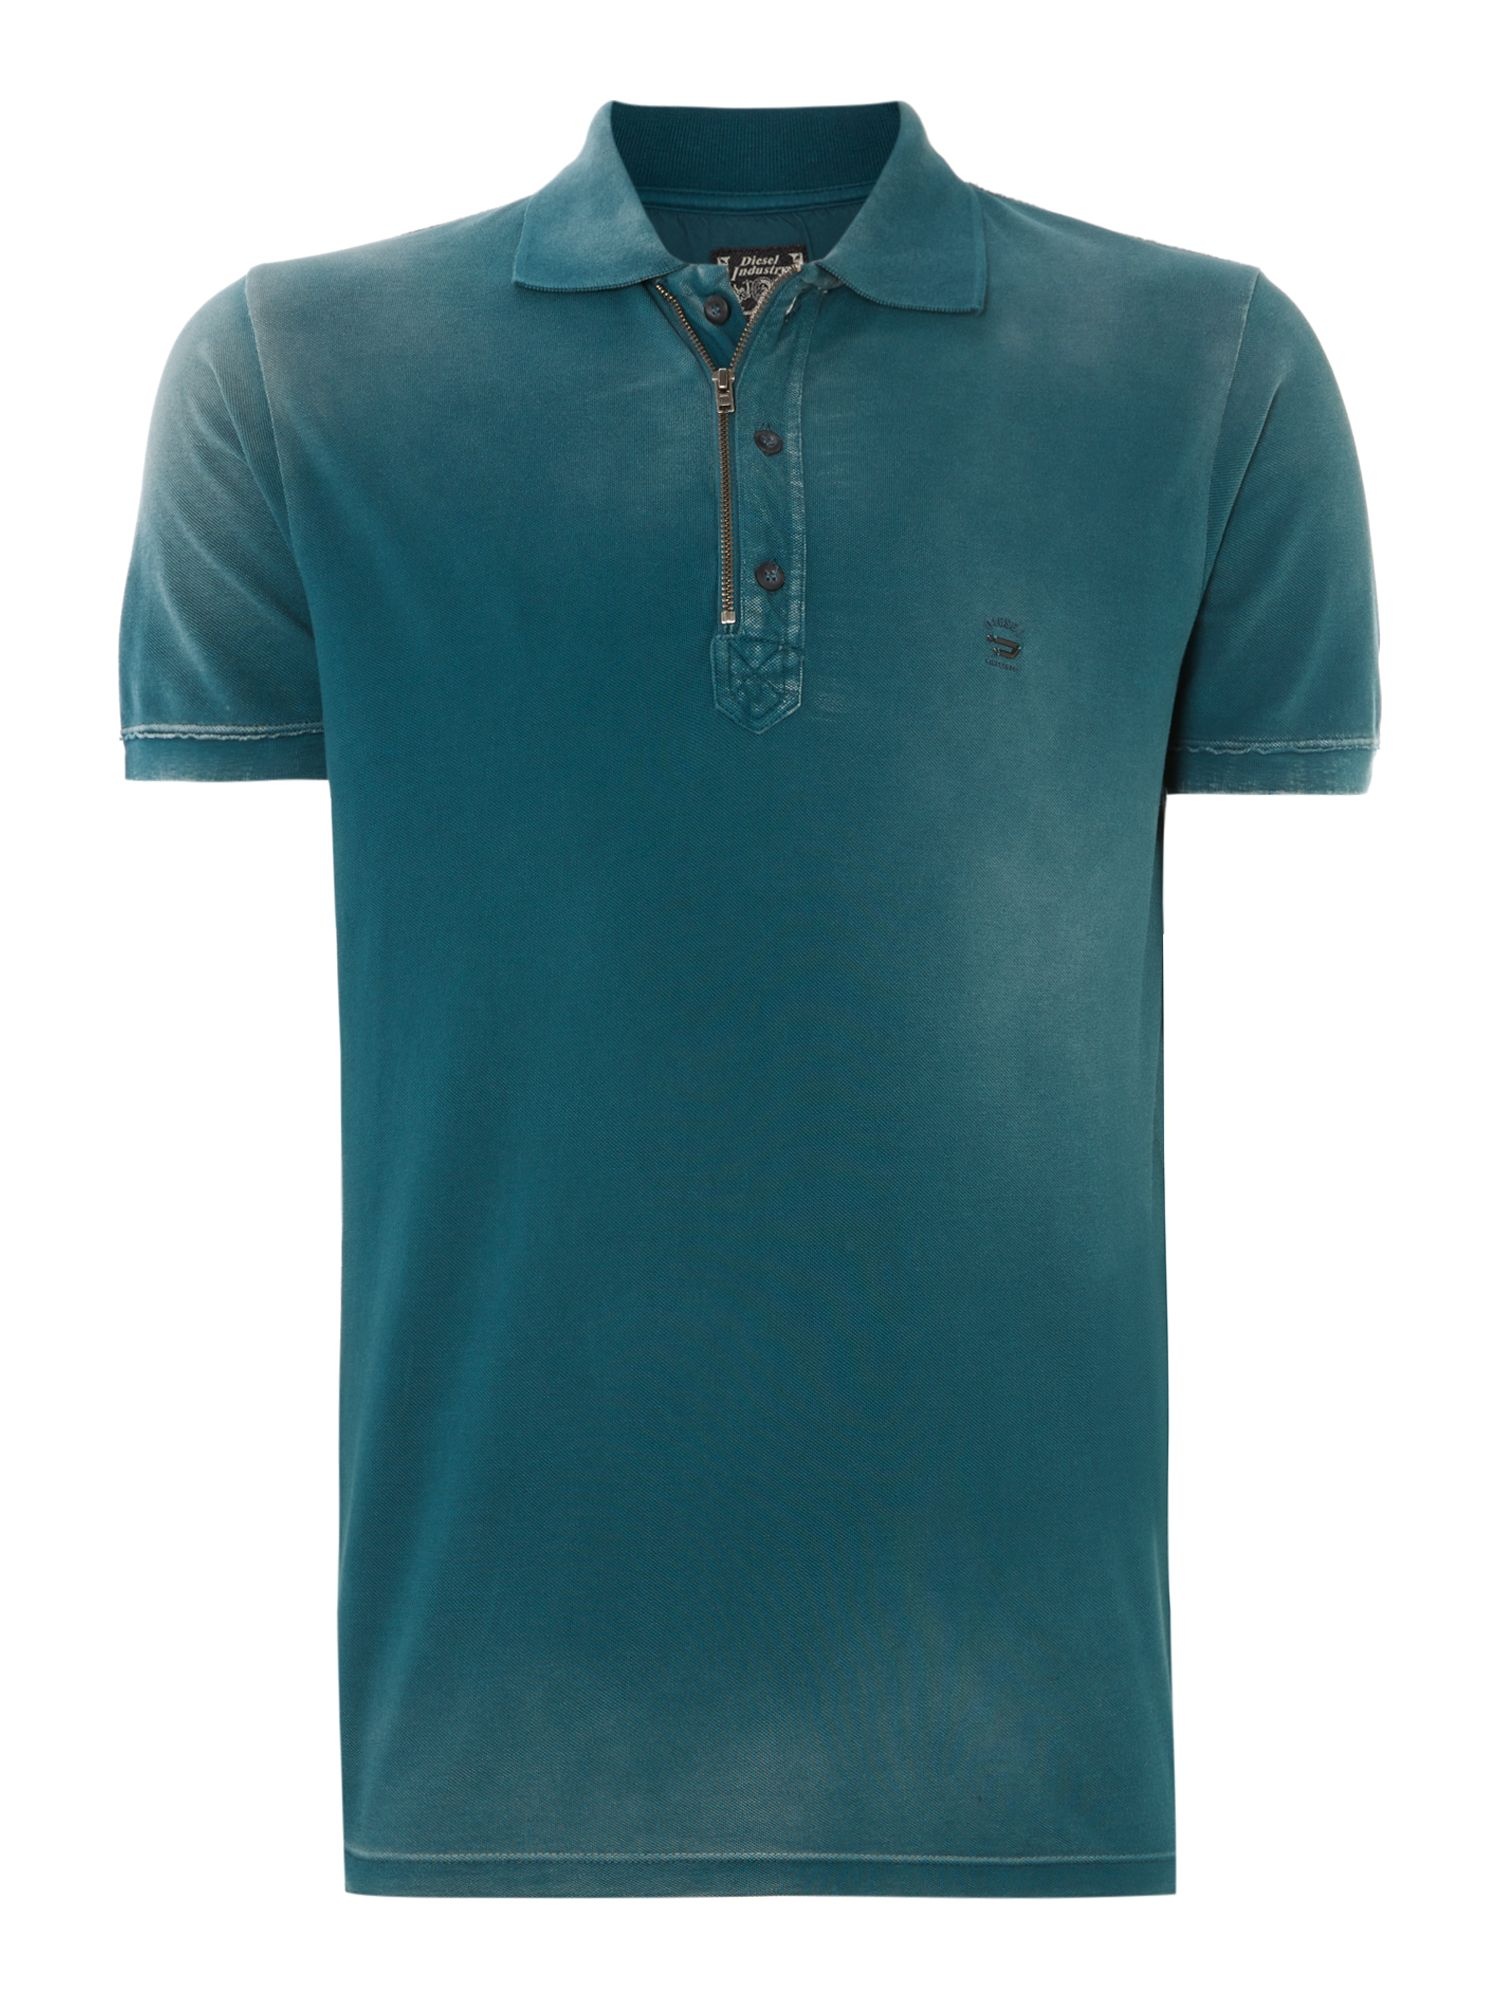 T-kalanit zip collar polo shirt